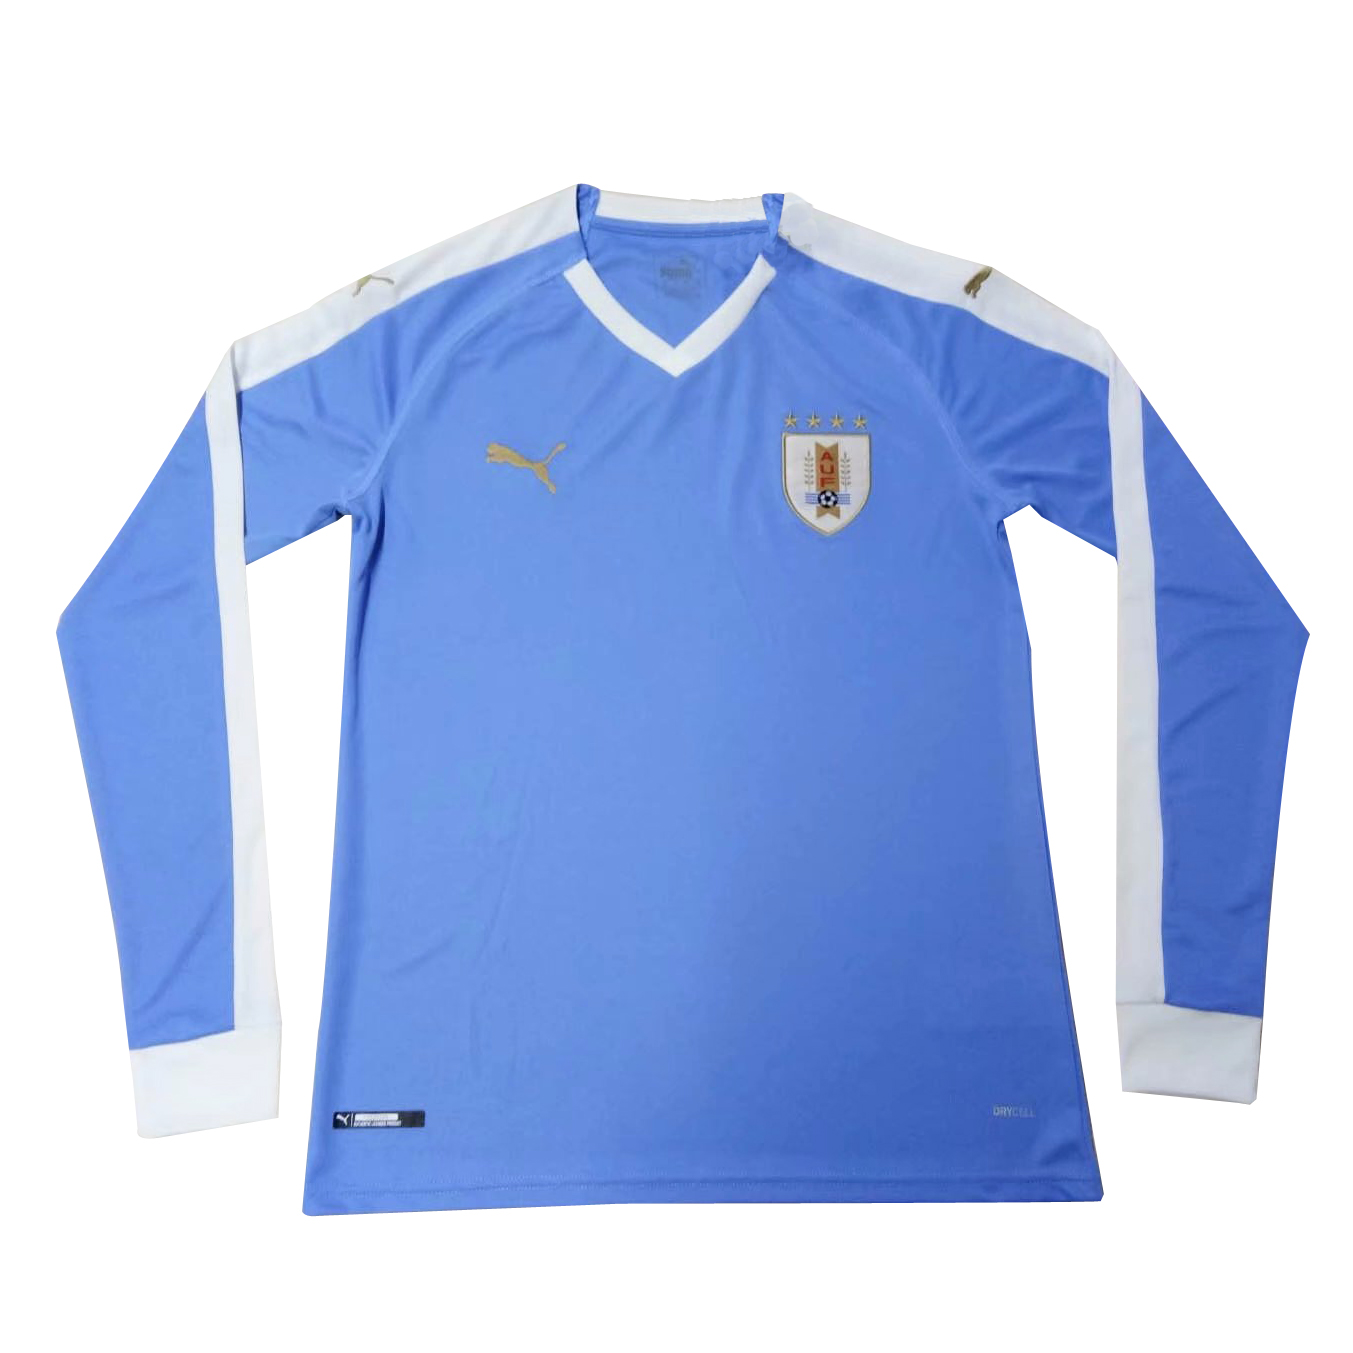 04ca96a66 US  16.8 - Uruguay Copa America 2019 Home Jersey Long Sleeve Men s -  www.fcsoccerworld.com